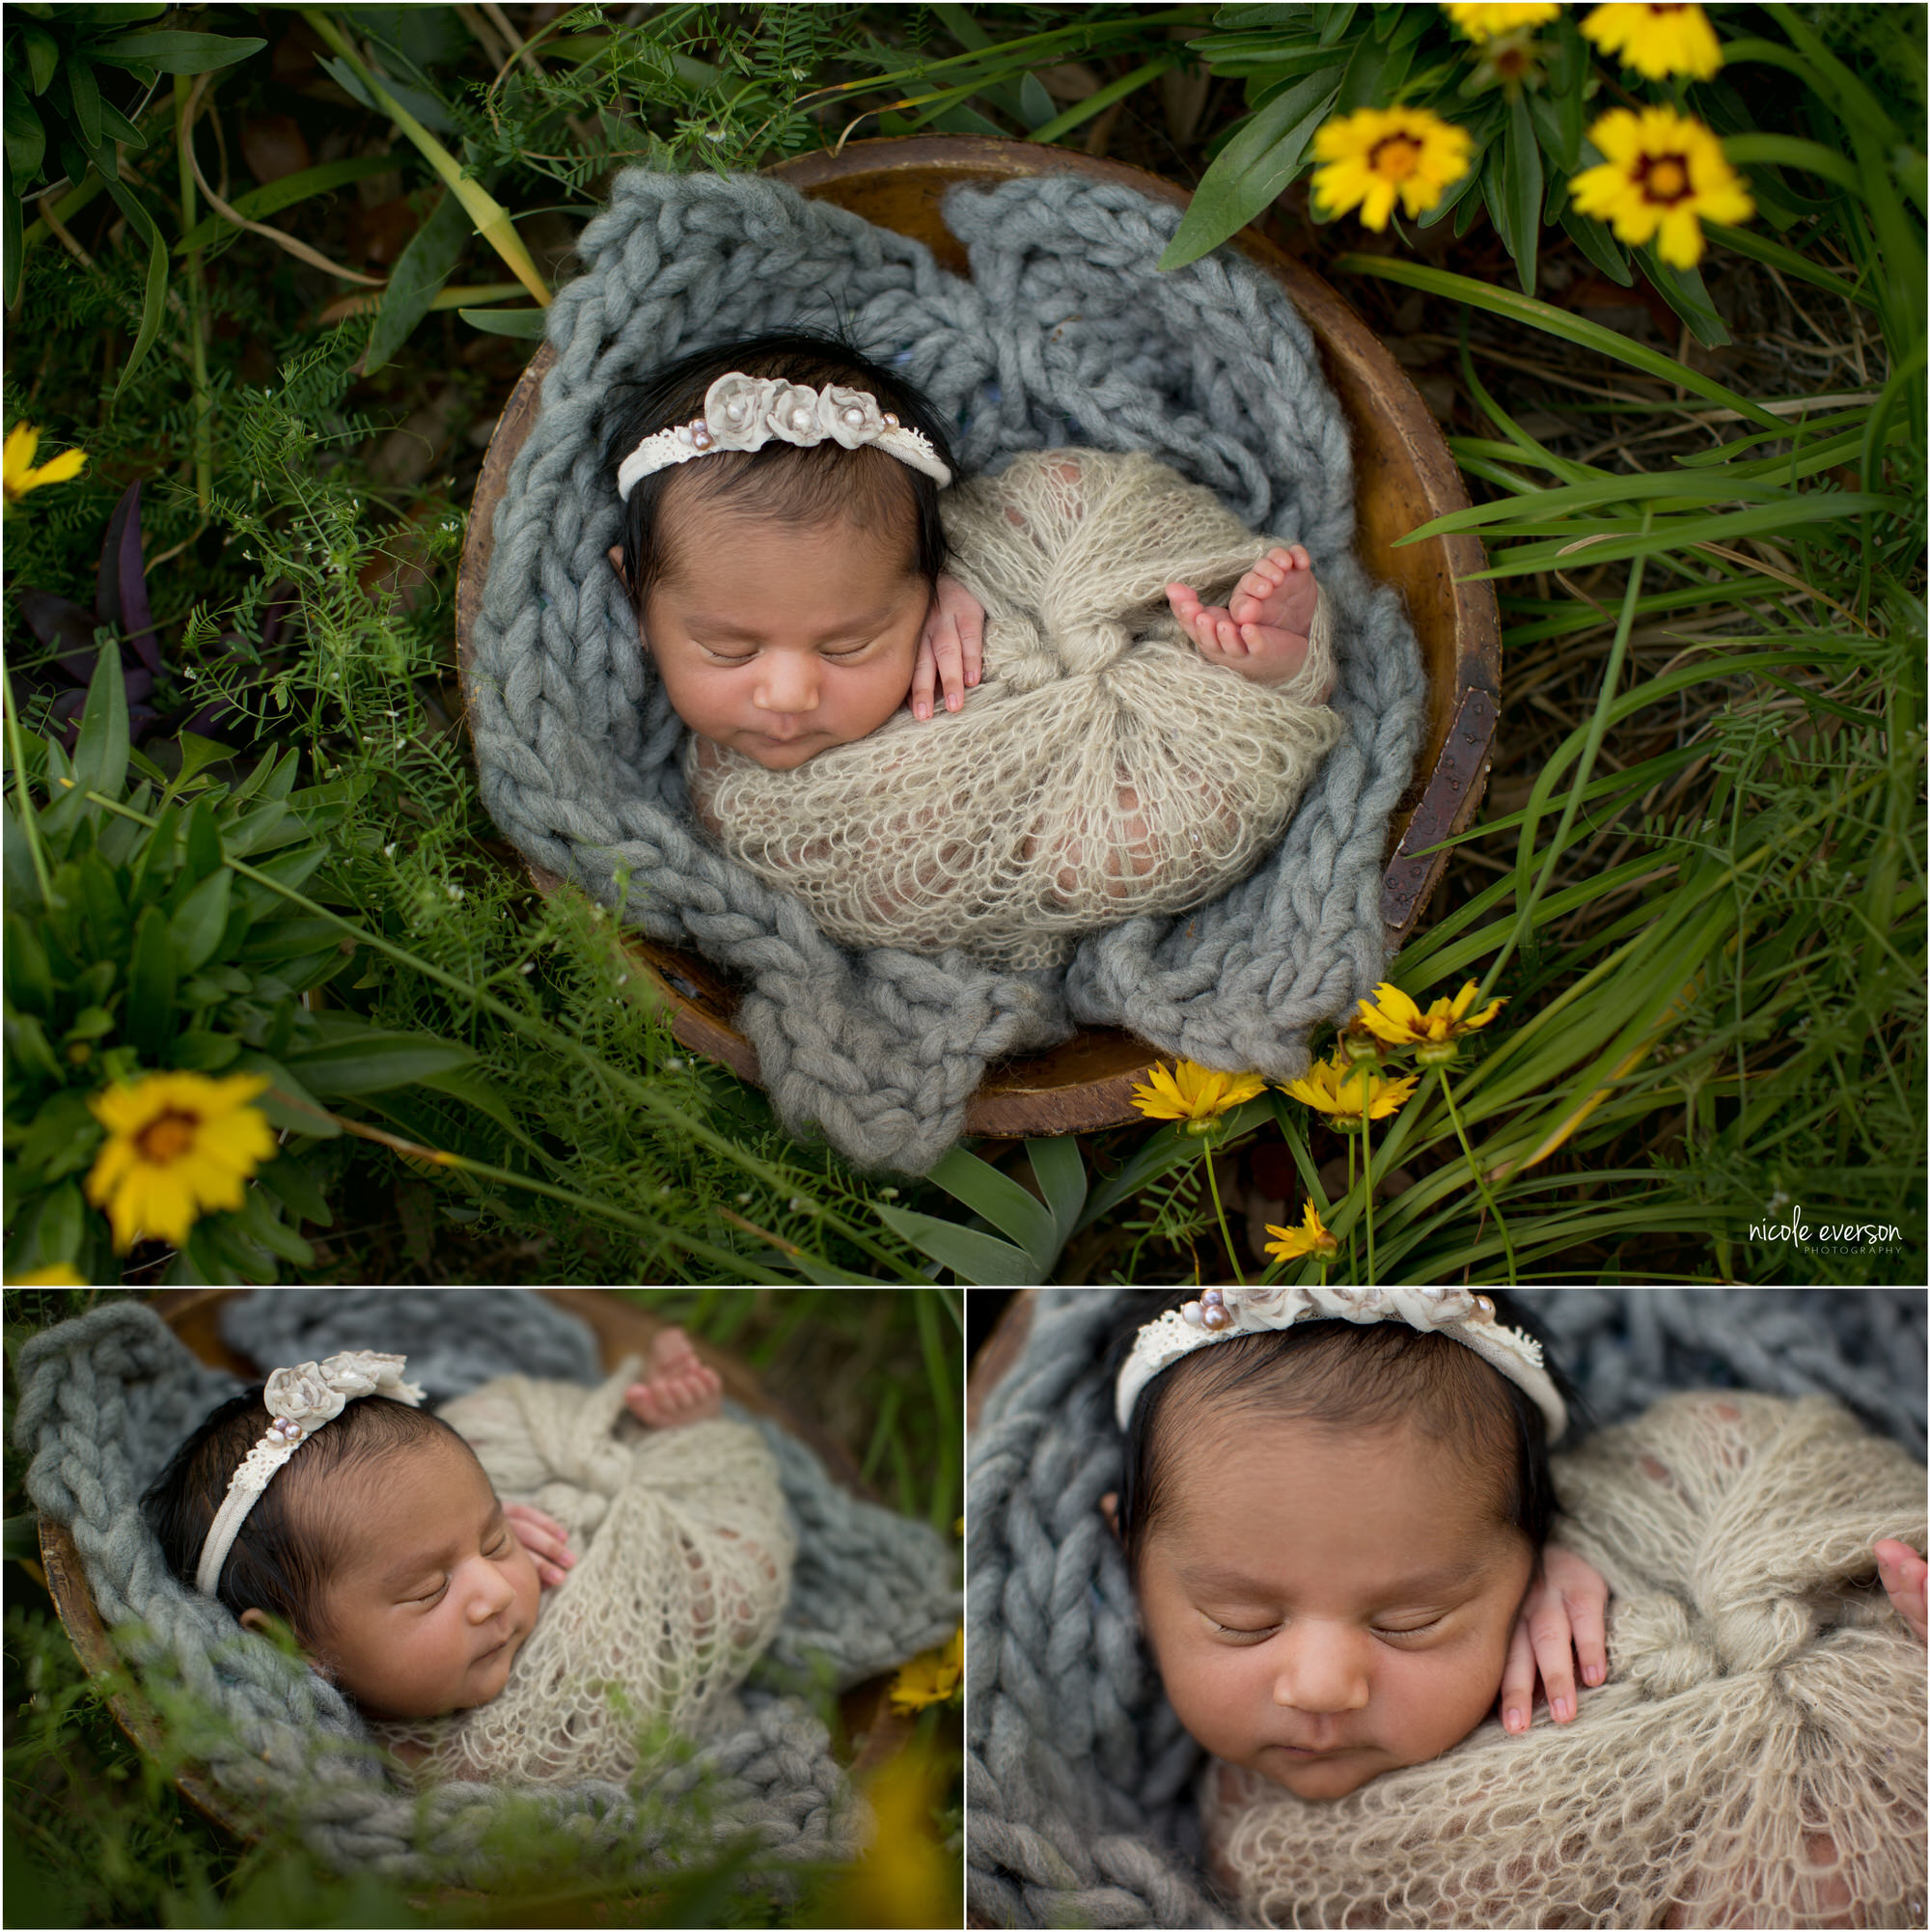 Newborn baby girl snuggled in soft brown and grey blankets in a basket. Tallahassee Newborn Potraits. Nicole Everson Photography.